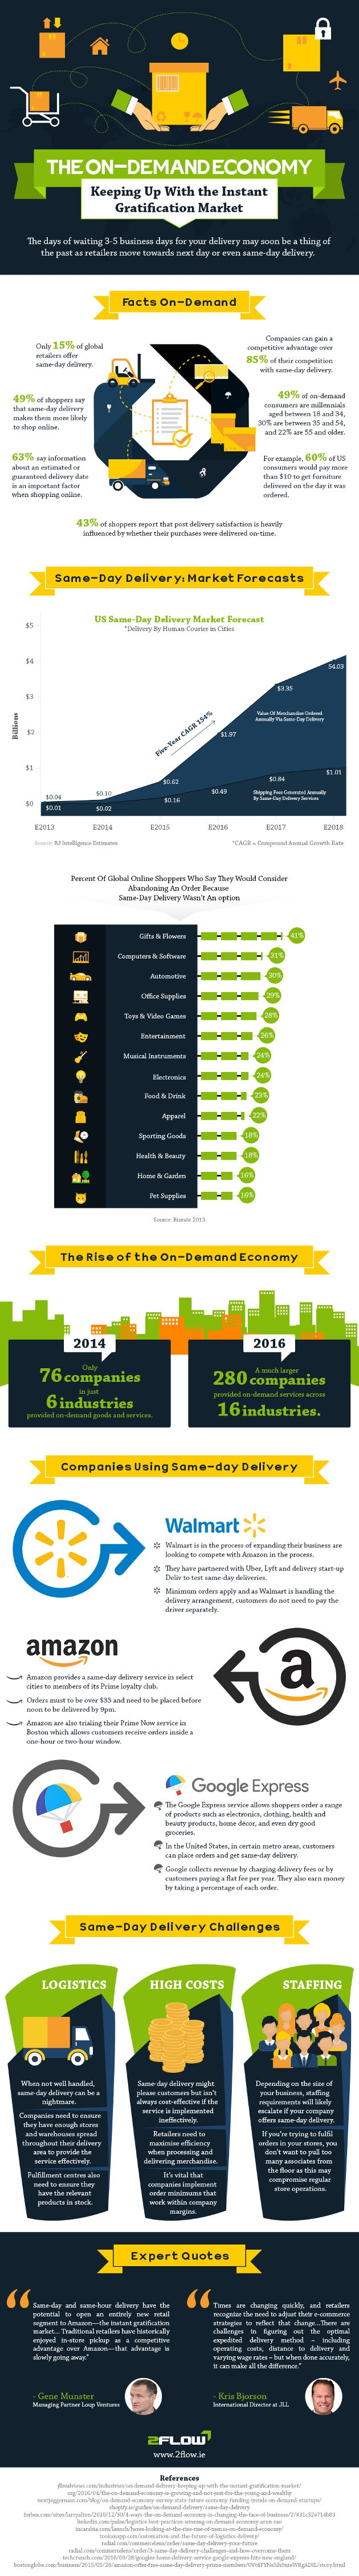 The On-Demand Economy Keeping Up With the Instant Gratification Market #infographic